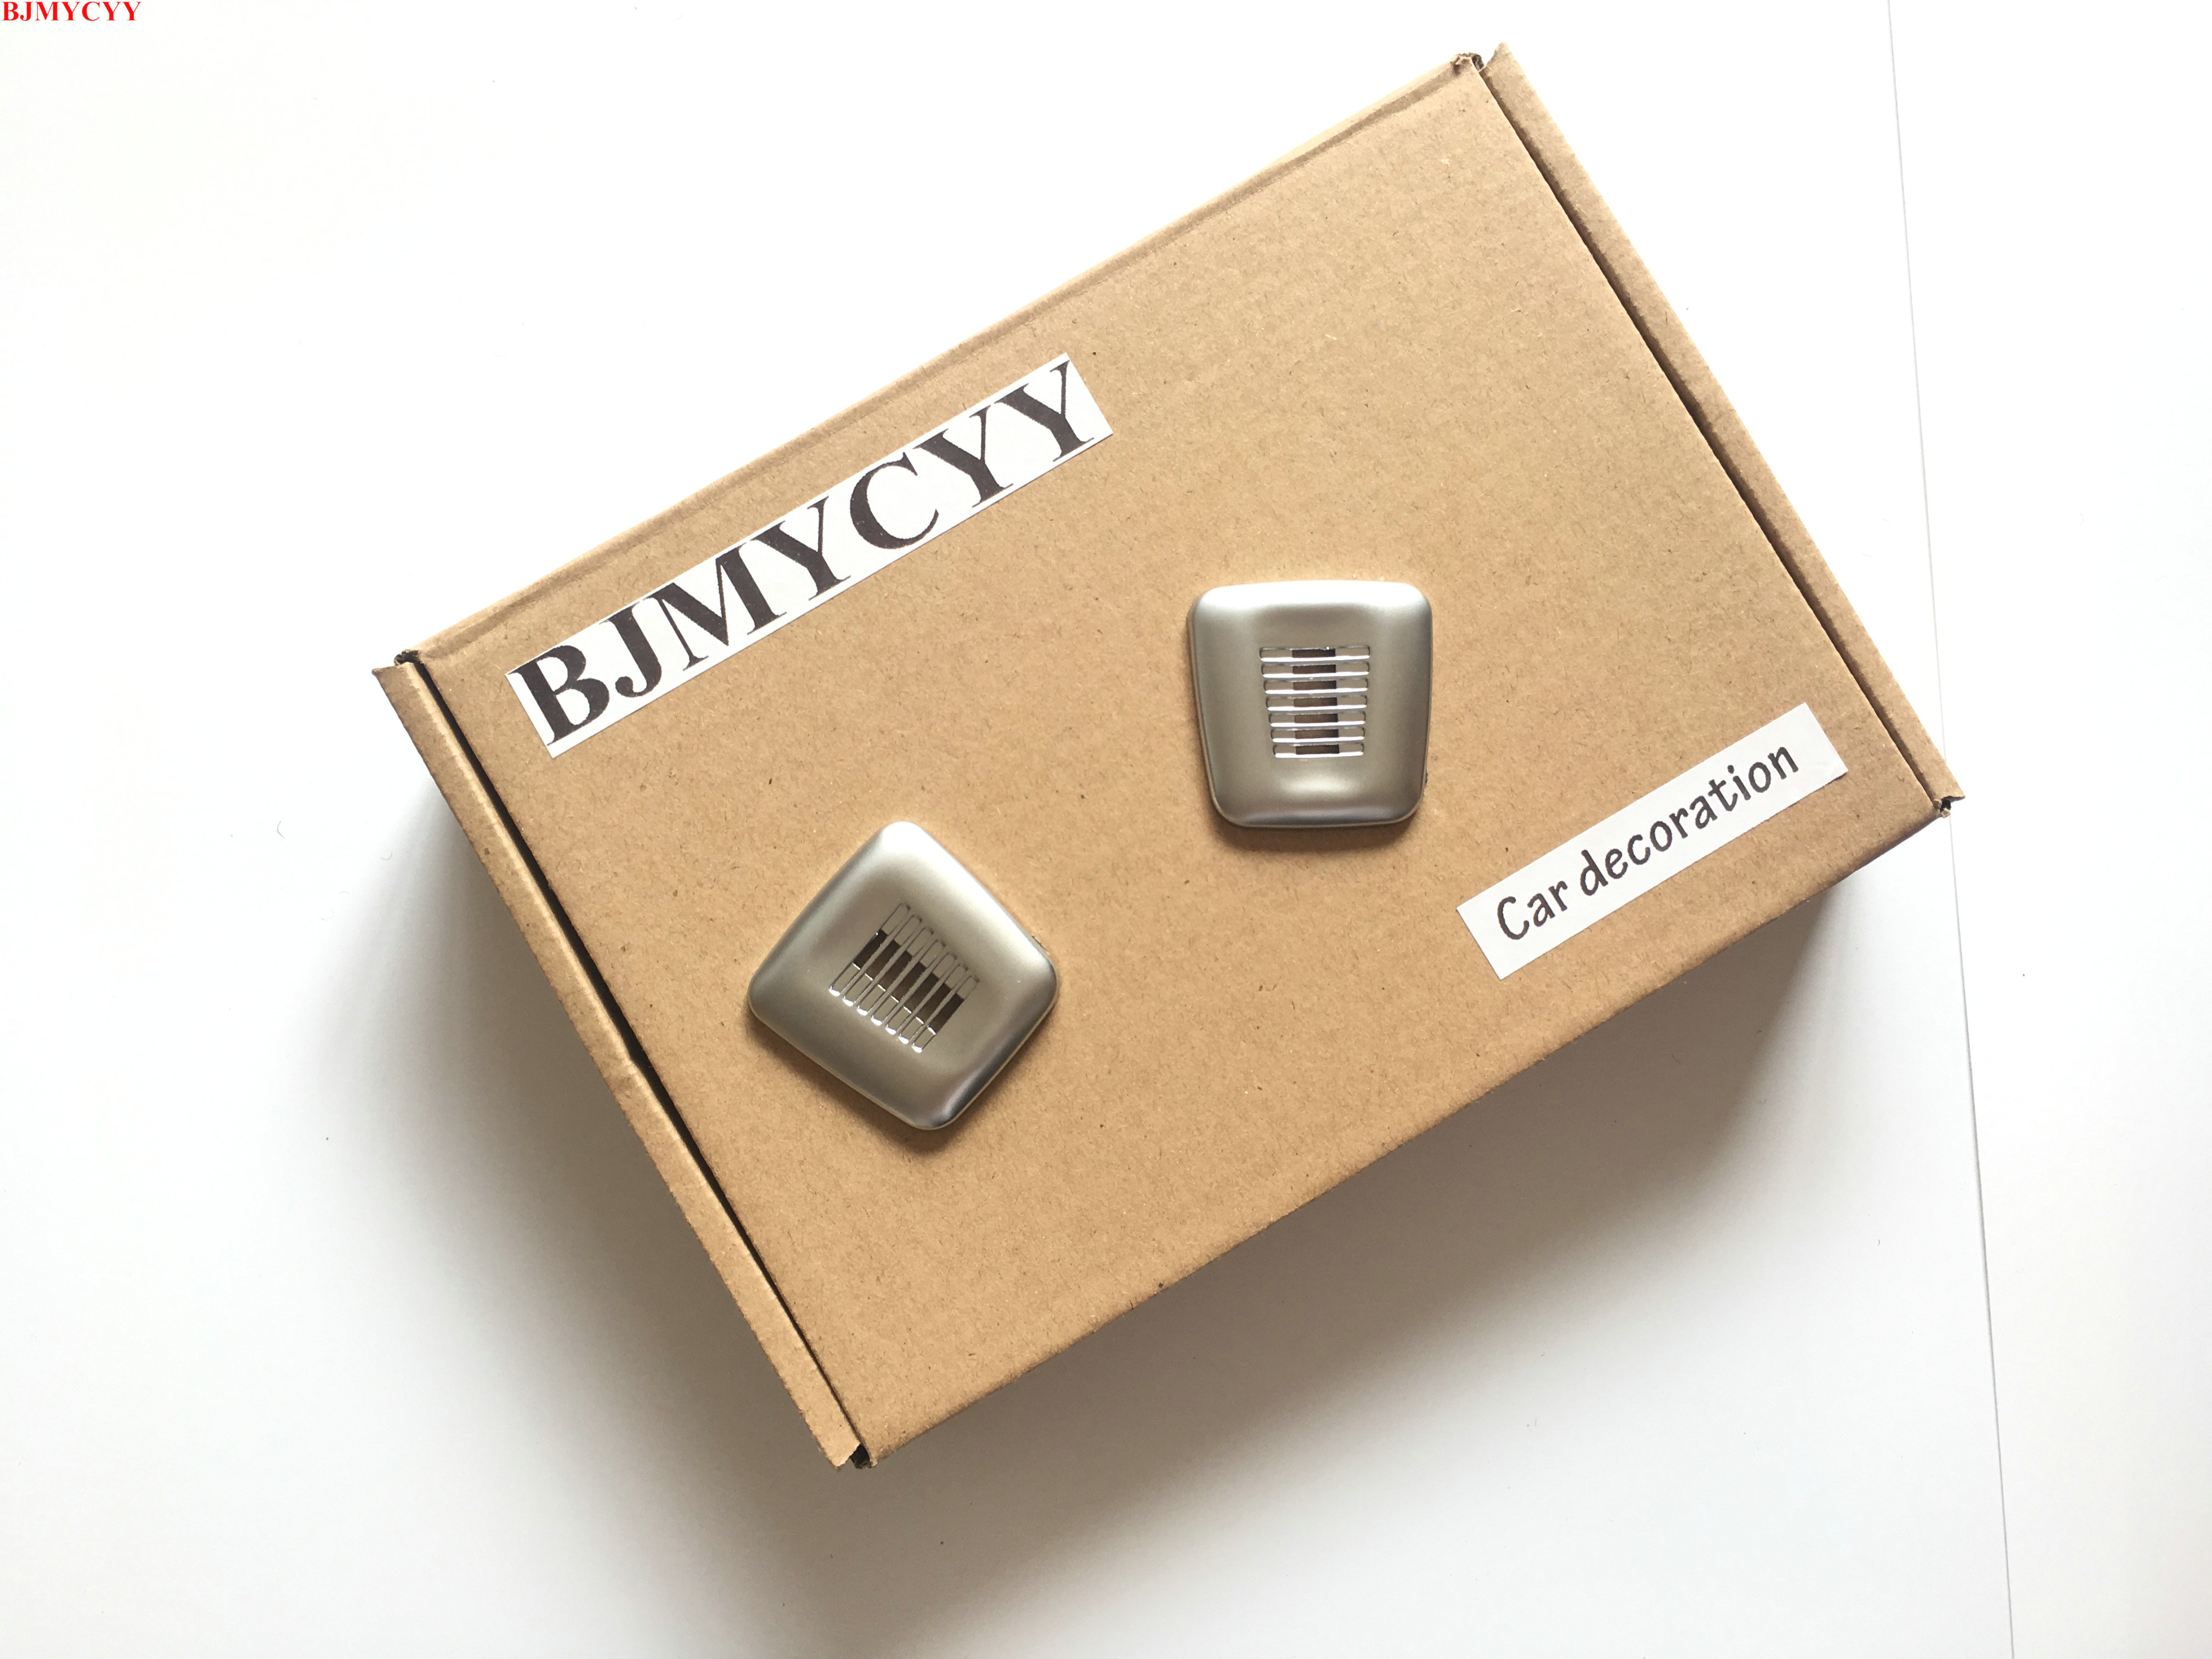 BJMYCYY 2Pcs speaker coveragecar accessories For <font><b>BMW</b></font> F20 118i <font><b>116i</b></font> X3 X5 GT X4 X6 2014 2015 2016 image